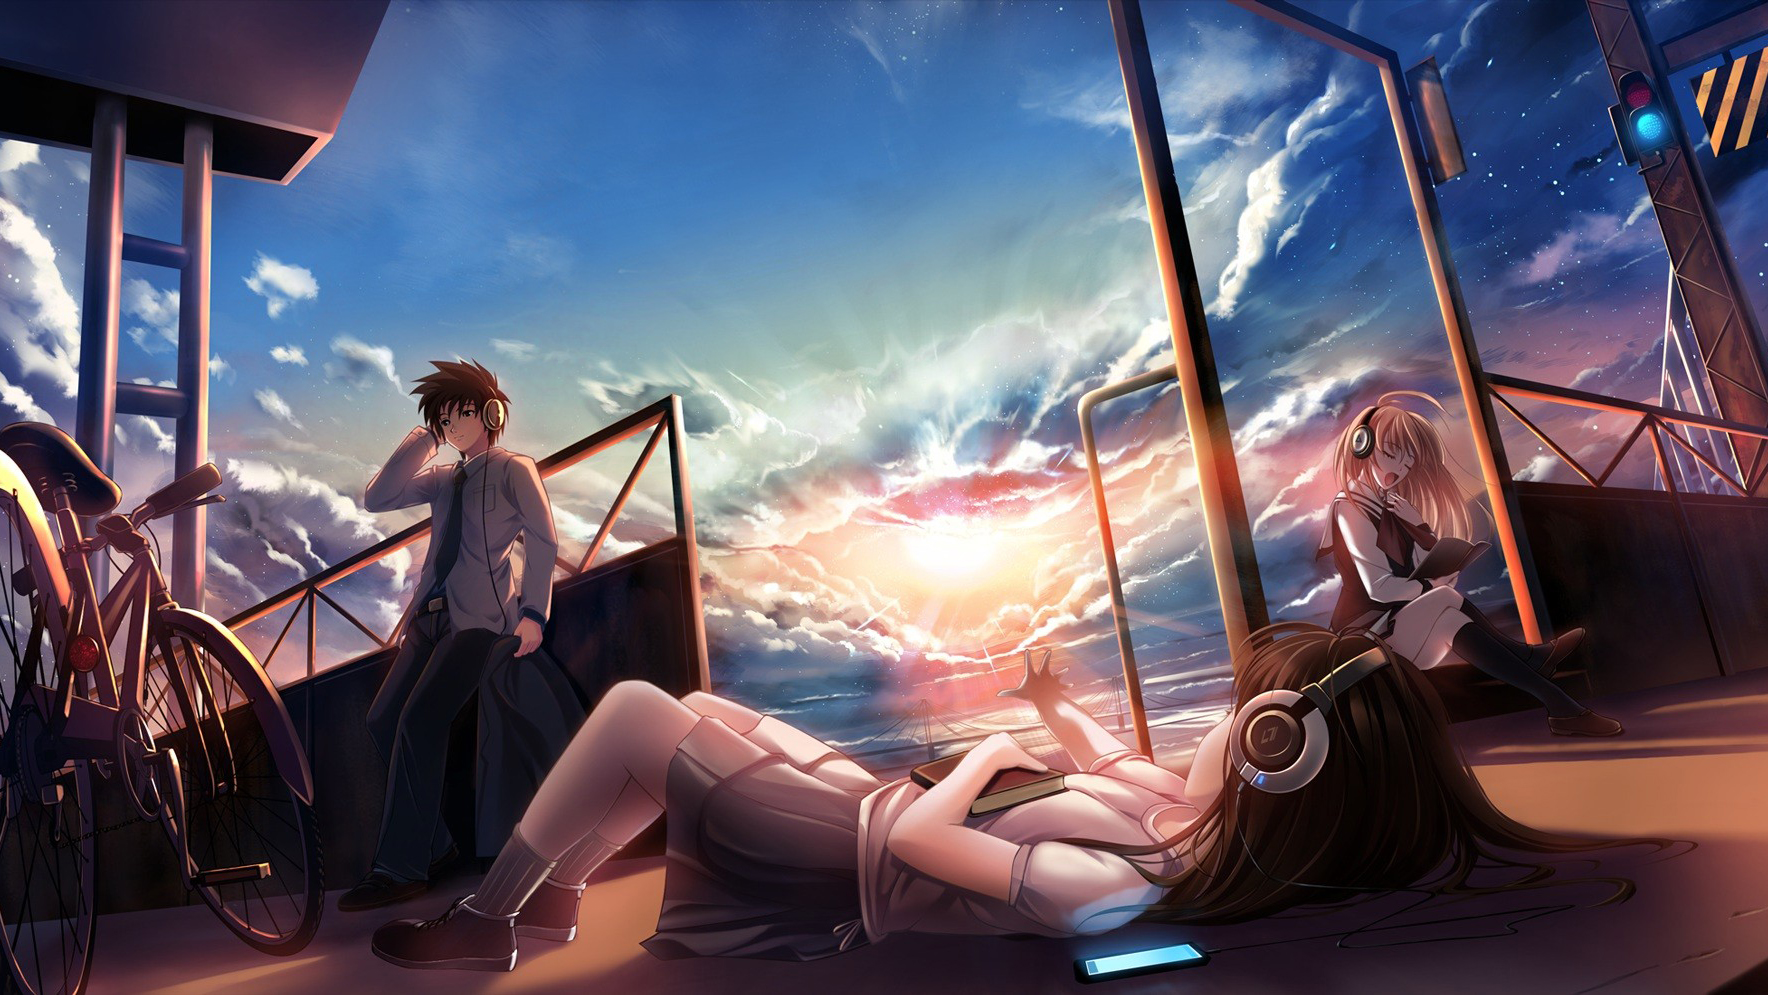 Boy And Girl Best Friend Wallpaper Original Wallpaper And Background Image 1768x995 Id 415448